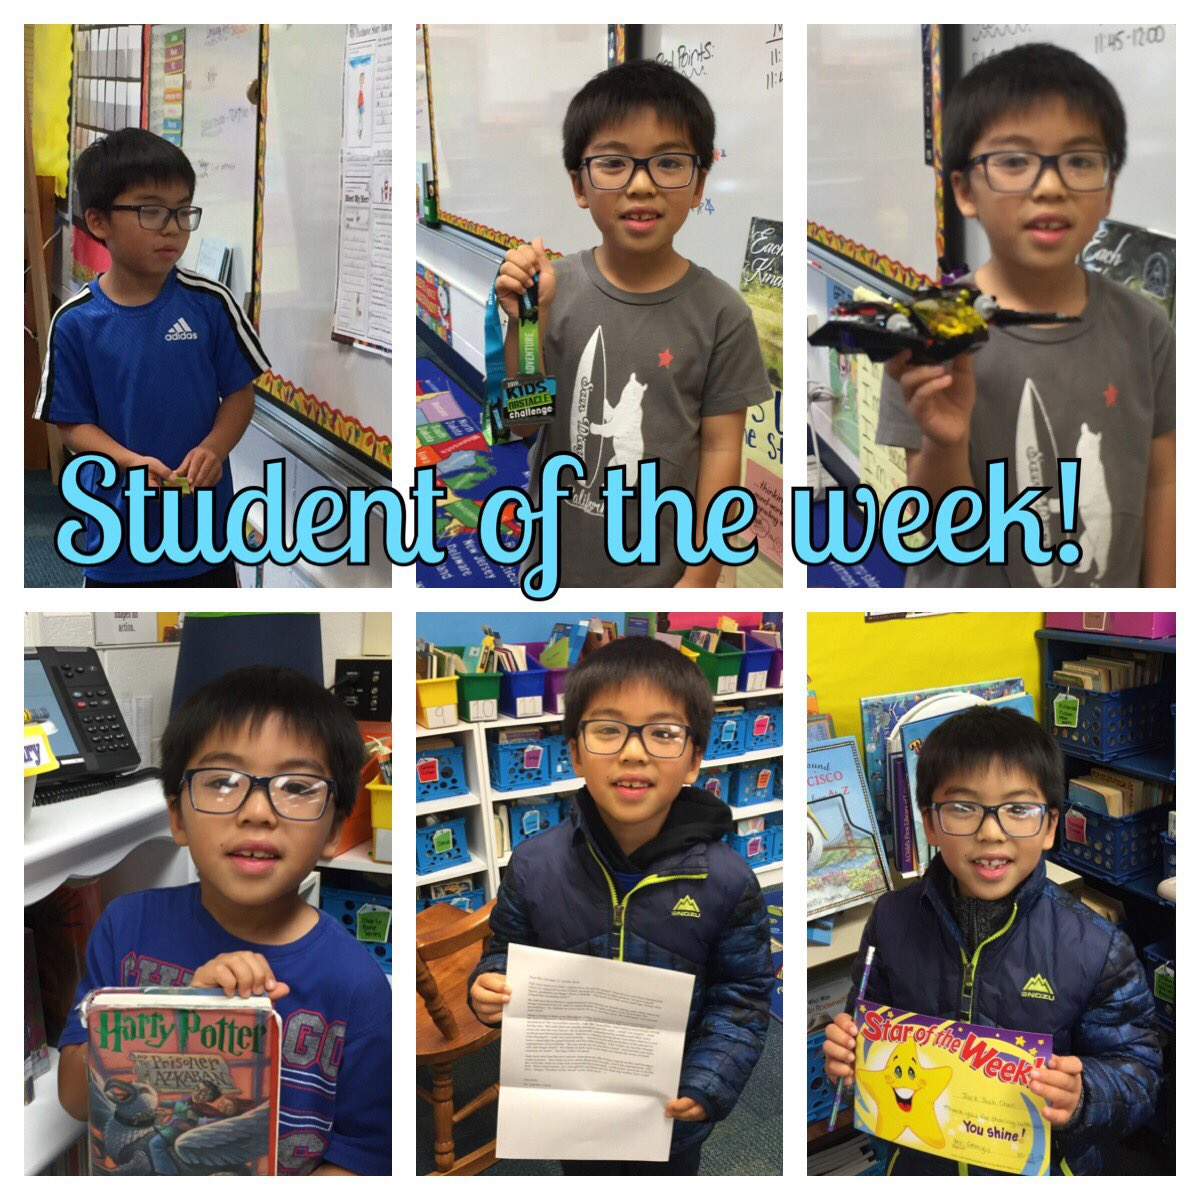 test Twitter Media - Student of the week! #d30learns https://t.co/ufBBdUPy7t